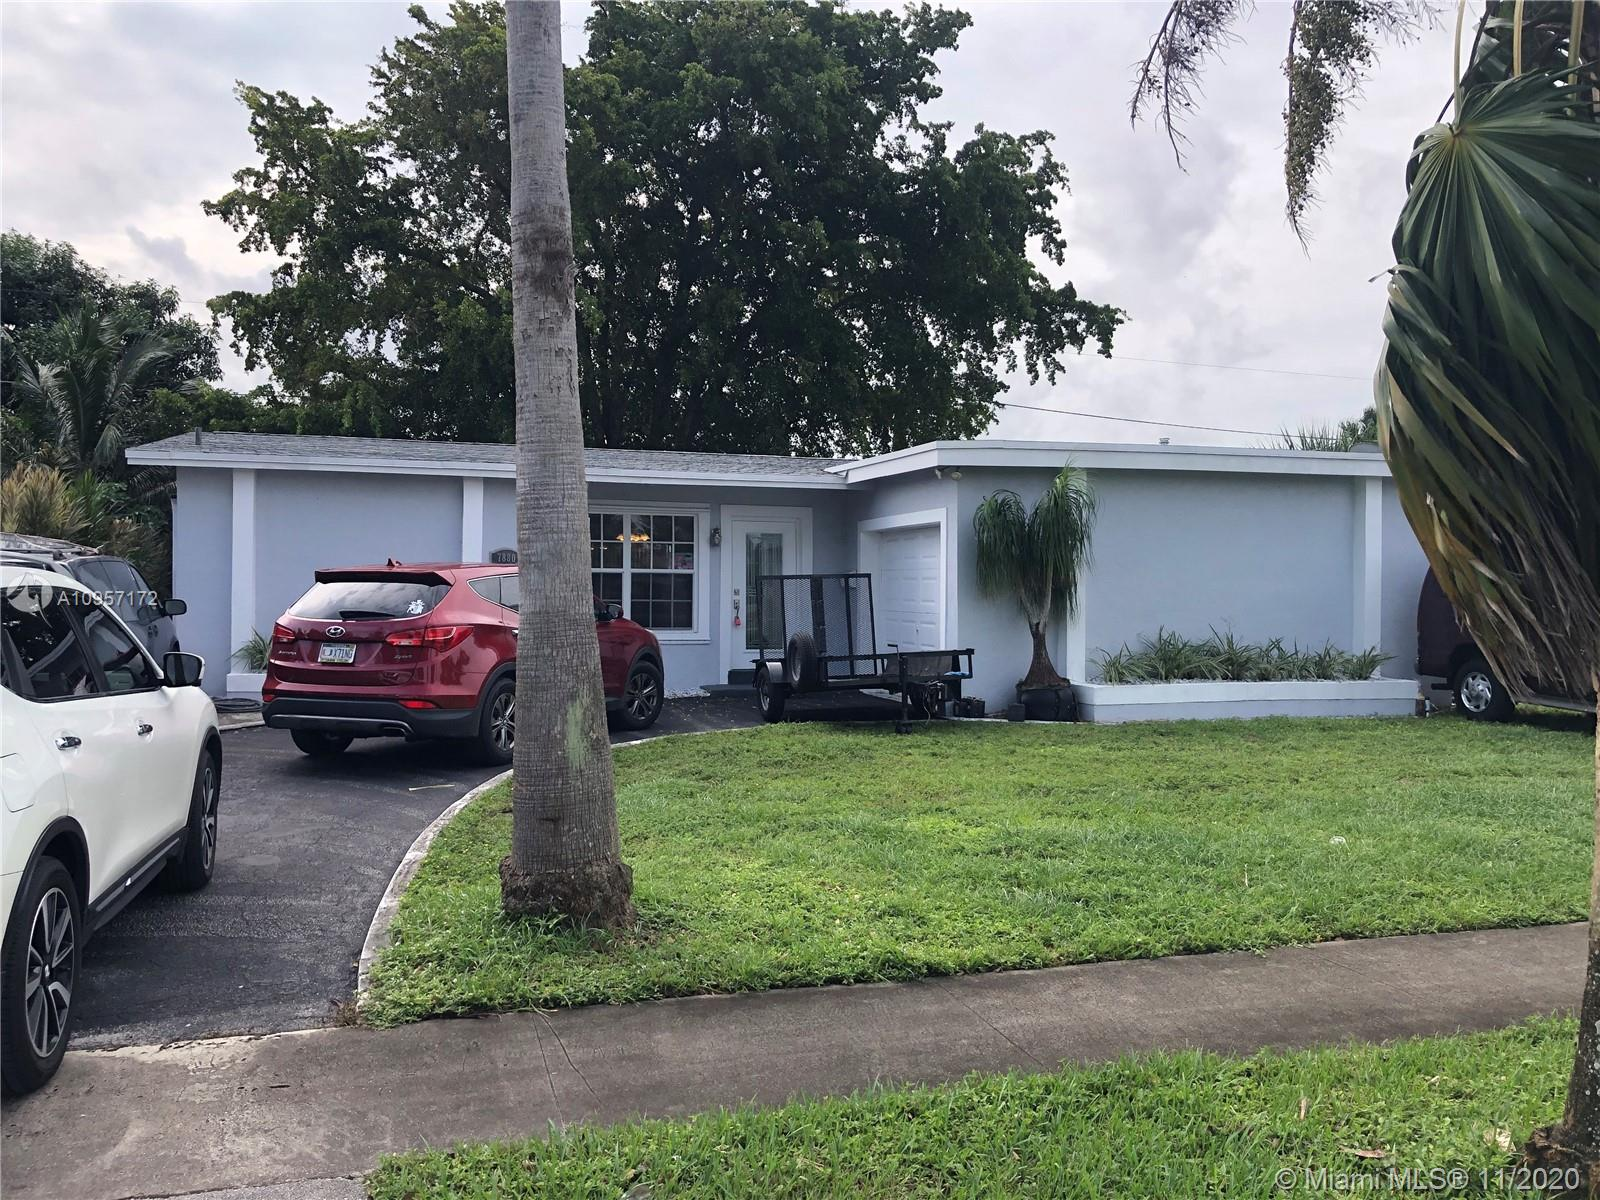 Home for sale in Sunrise. Absolute perfection! Brand new roof with lifetime warranty, new a/c, new water heater, newly painted. Shows beautifully! Bonus enclosed Florida room overlooks private & fenced backyard. One car garage. Fabulous kitchen! Split floorplan - bedrooms on each side of home. A true gem of a home. NO HOA. Great centralized location. You could walk to grocery store, banks, restaurants, and much more.